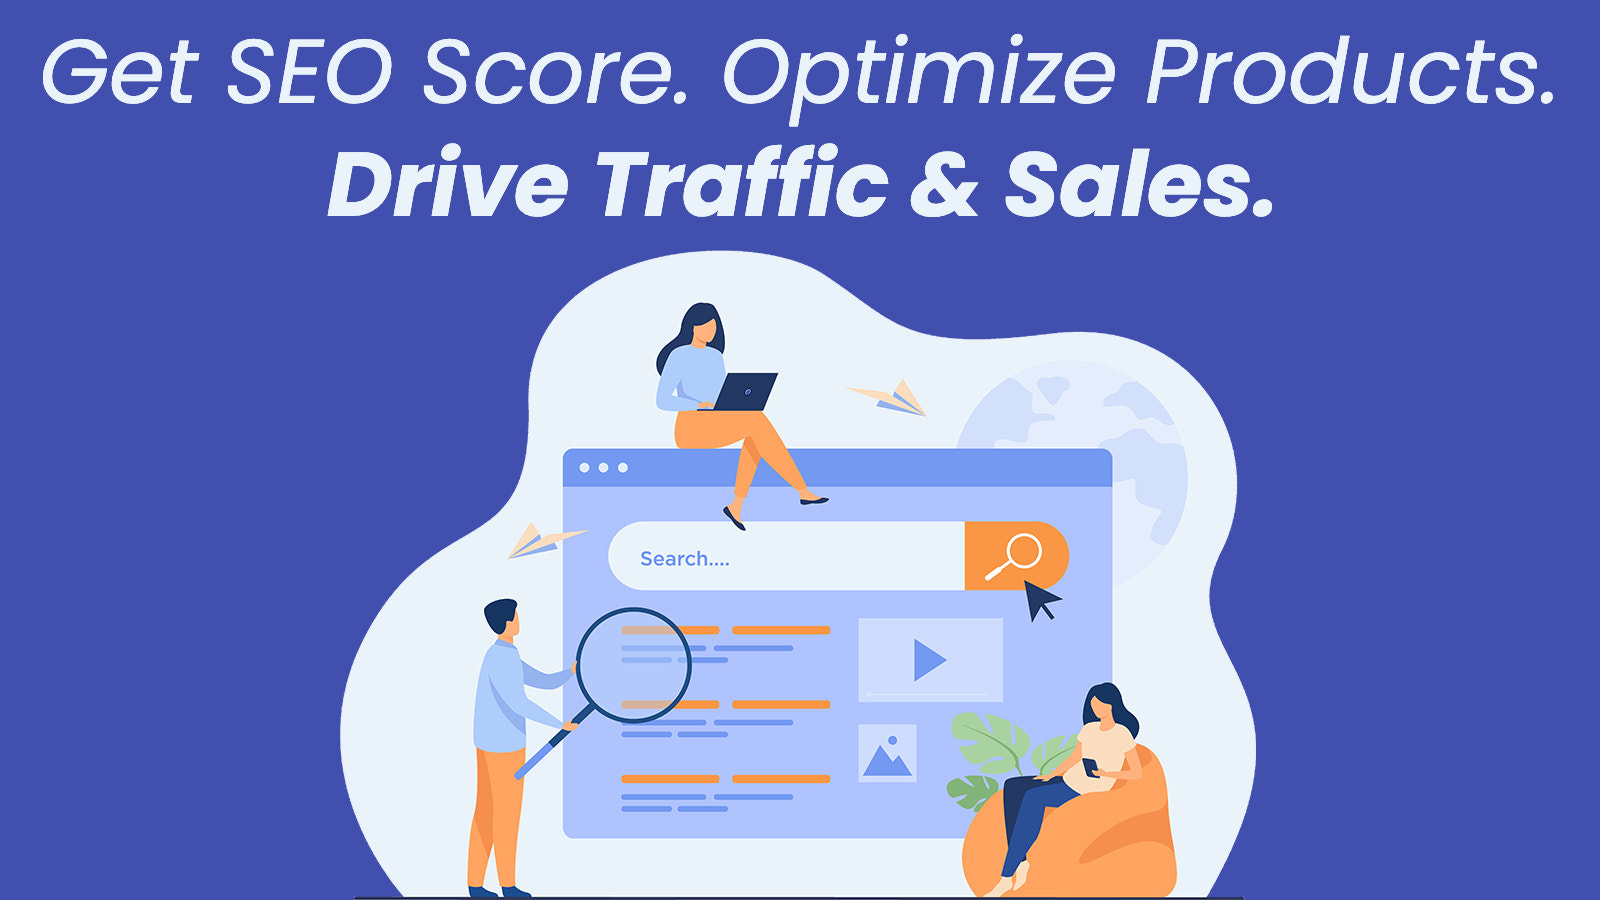 Get SEO Score for your Products. Drive traffic. Drive sales.